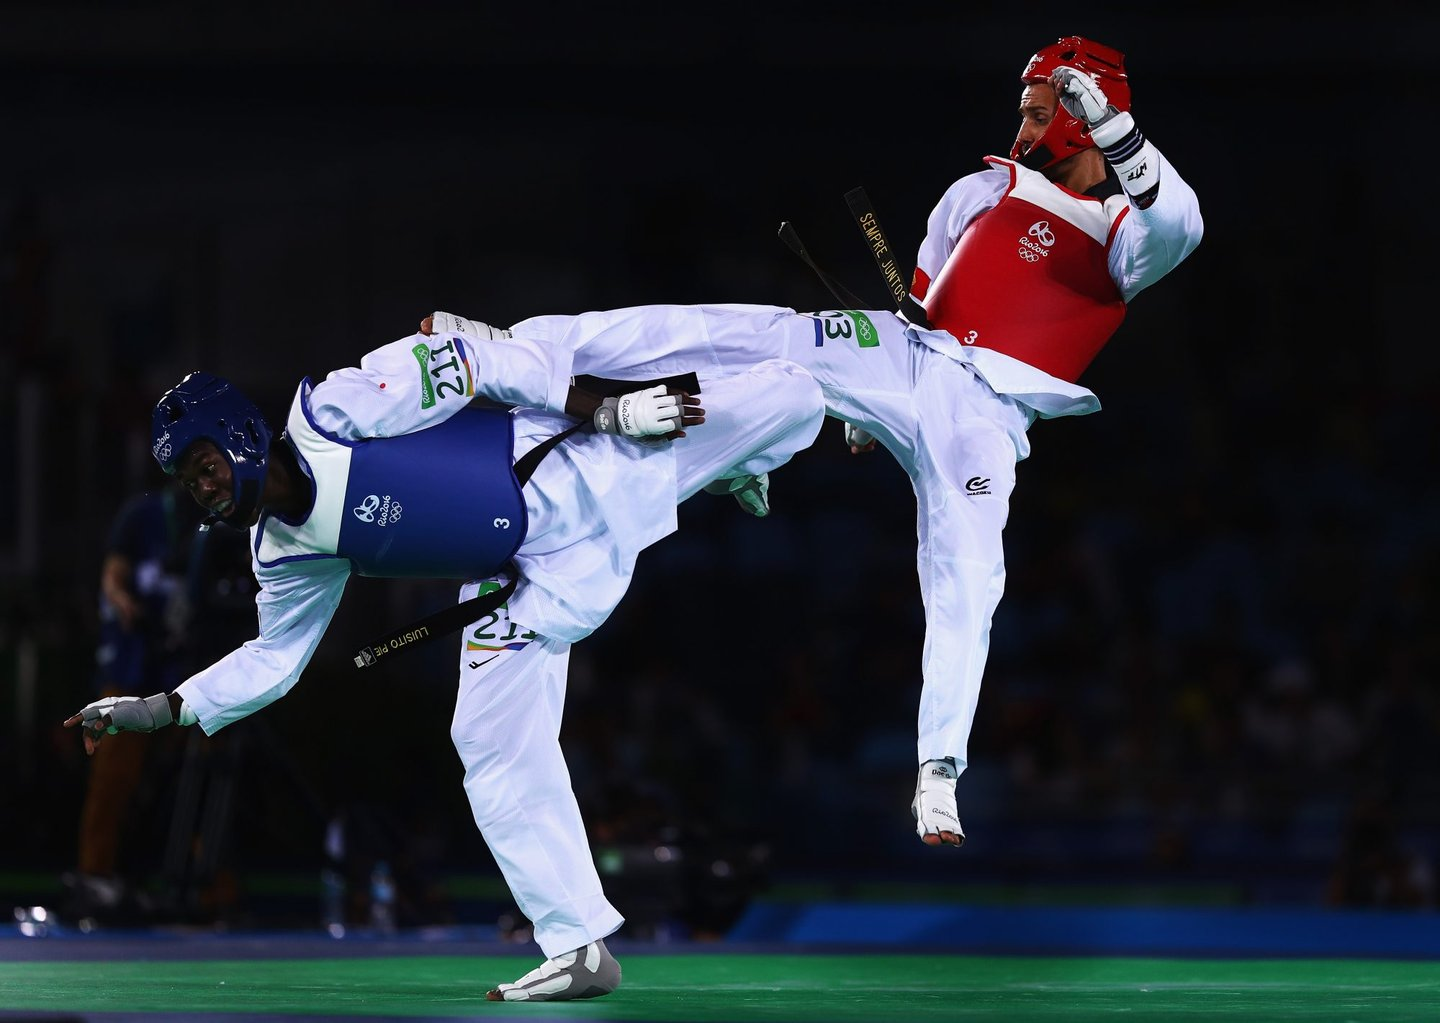 RIO DE JANEIRO, BRAZIL - AUGUST 17: Rui Braganca of Portugal kicks Luisito Pie of the Dominican Republic during the Taekwondo Men's -58kg Quarter Final contest at Cairoca Arena 3 on August 18, 2016 in Rio de Janeiro, Brazil. (Photo by Ryan Pierse/Getty Images)